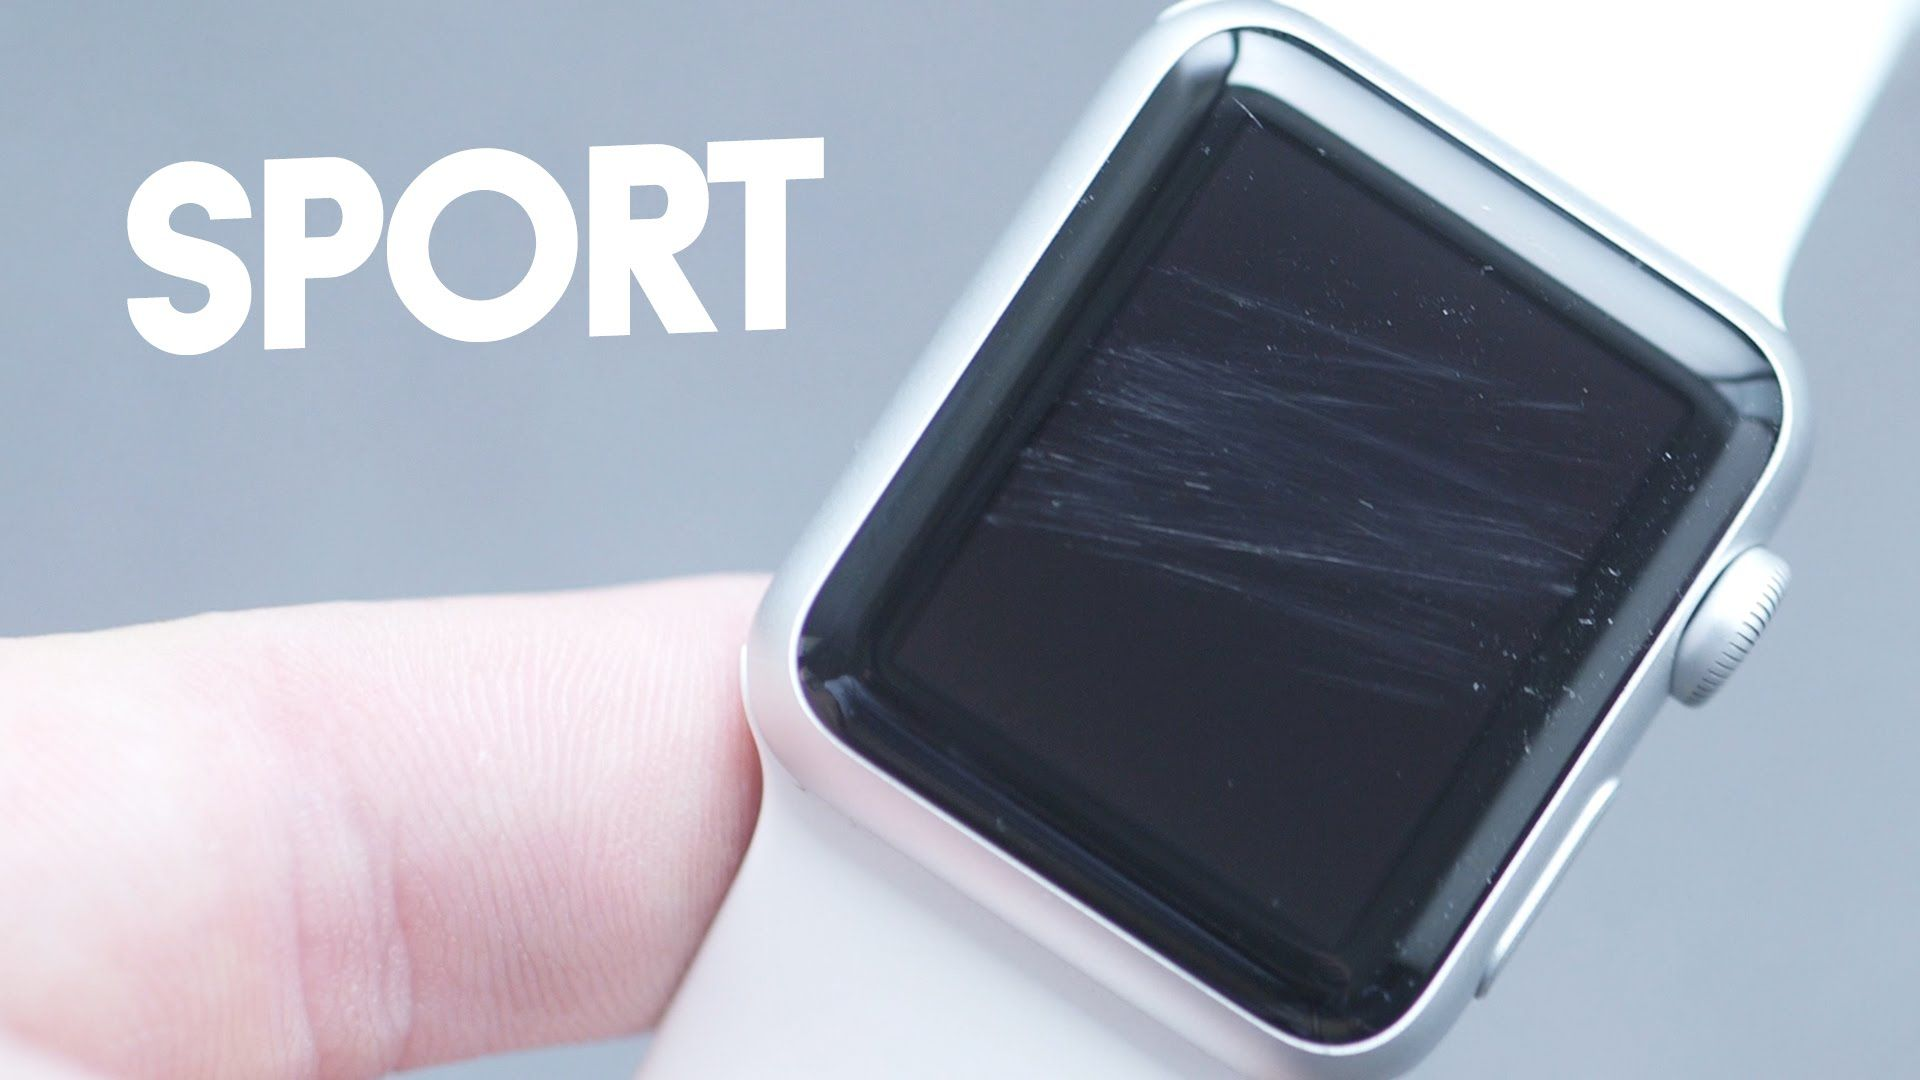 Displayschutzfolie Fur Apple Watch Von Glaz Liquid Apple Watch